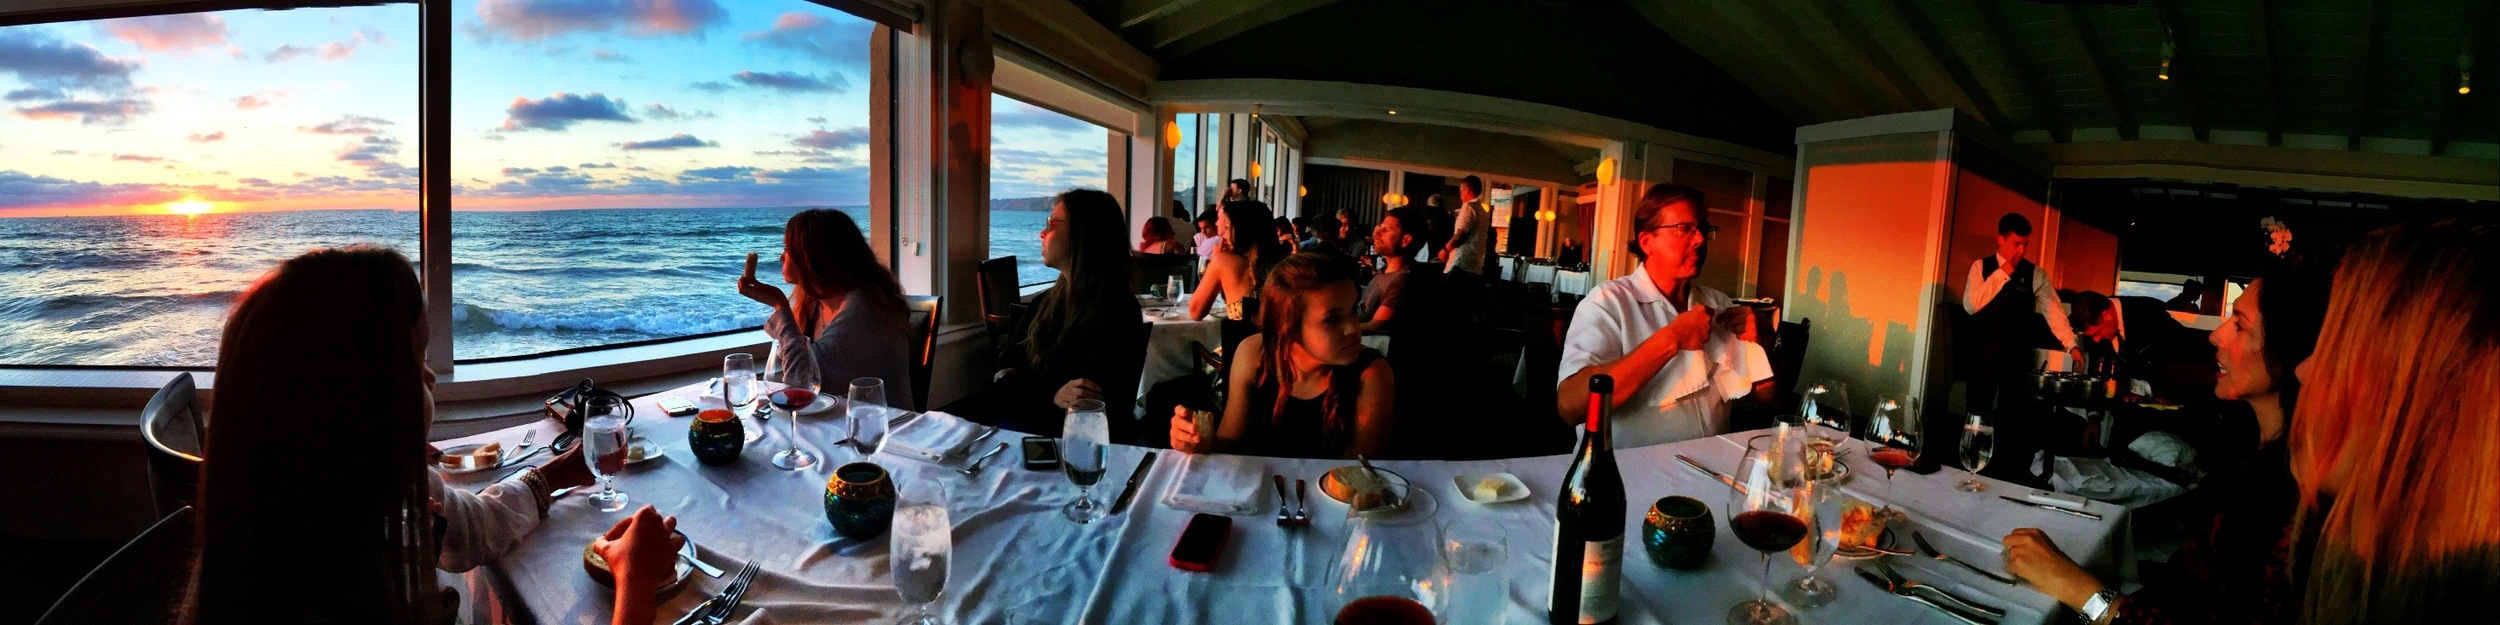 Dinner at the Marine Room in LaJolla